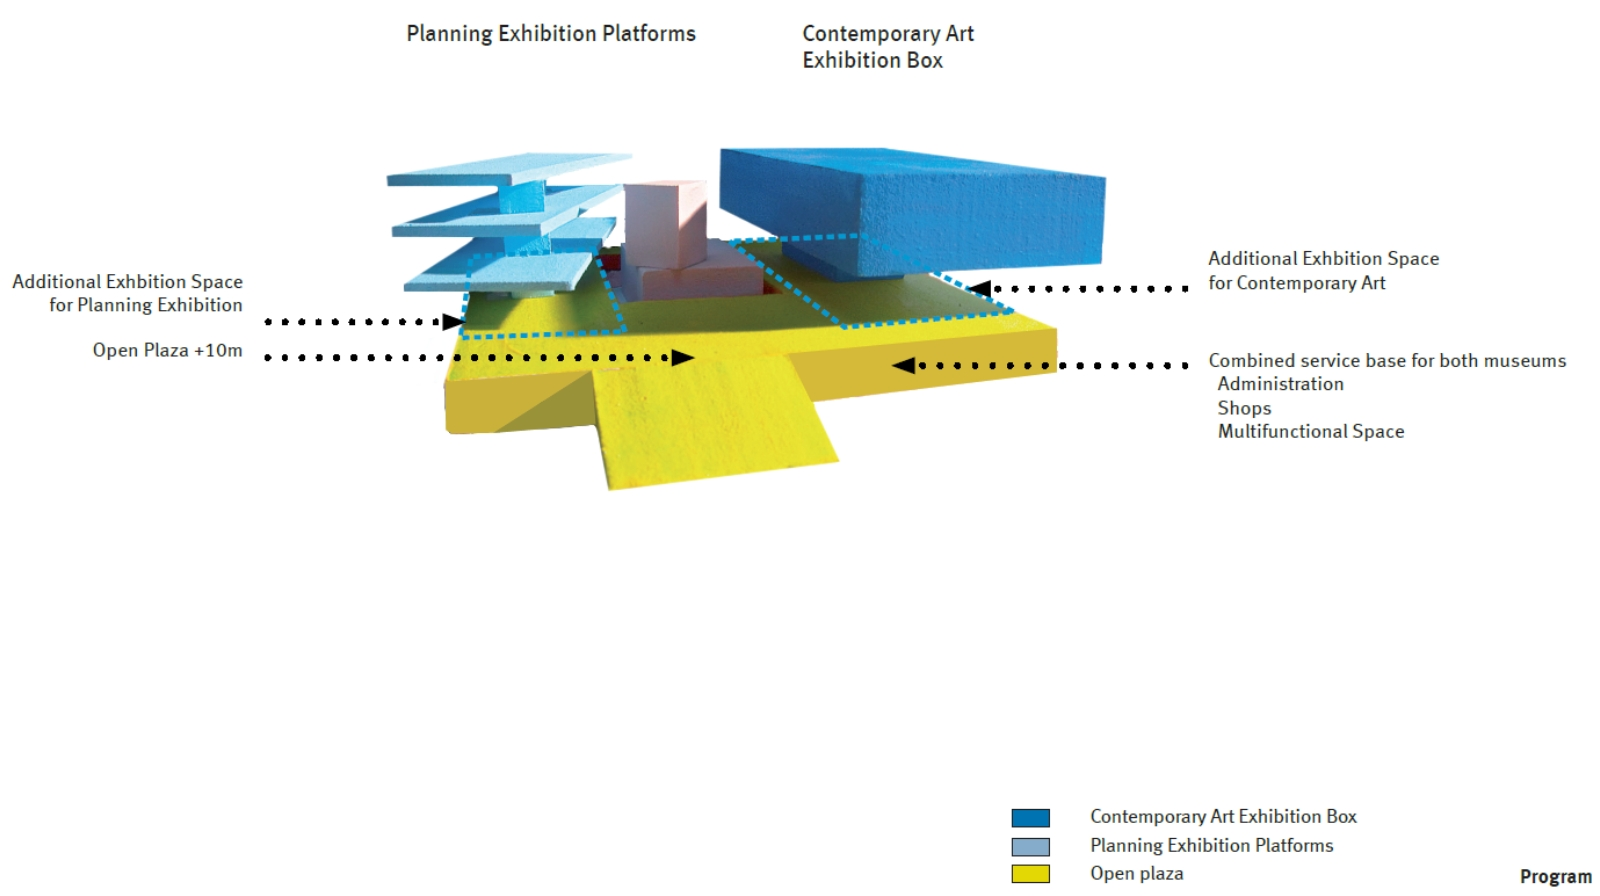 Museum of Contemporary Art & Planning Exhibition (MOCAPE)